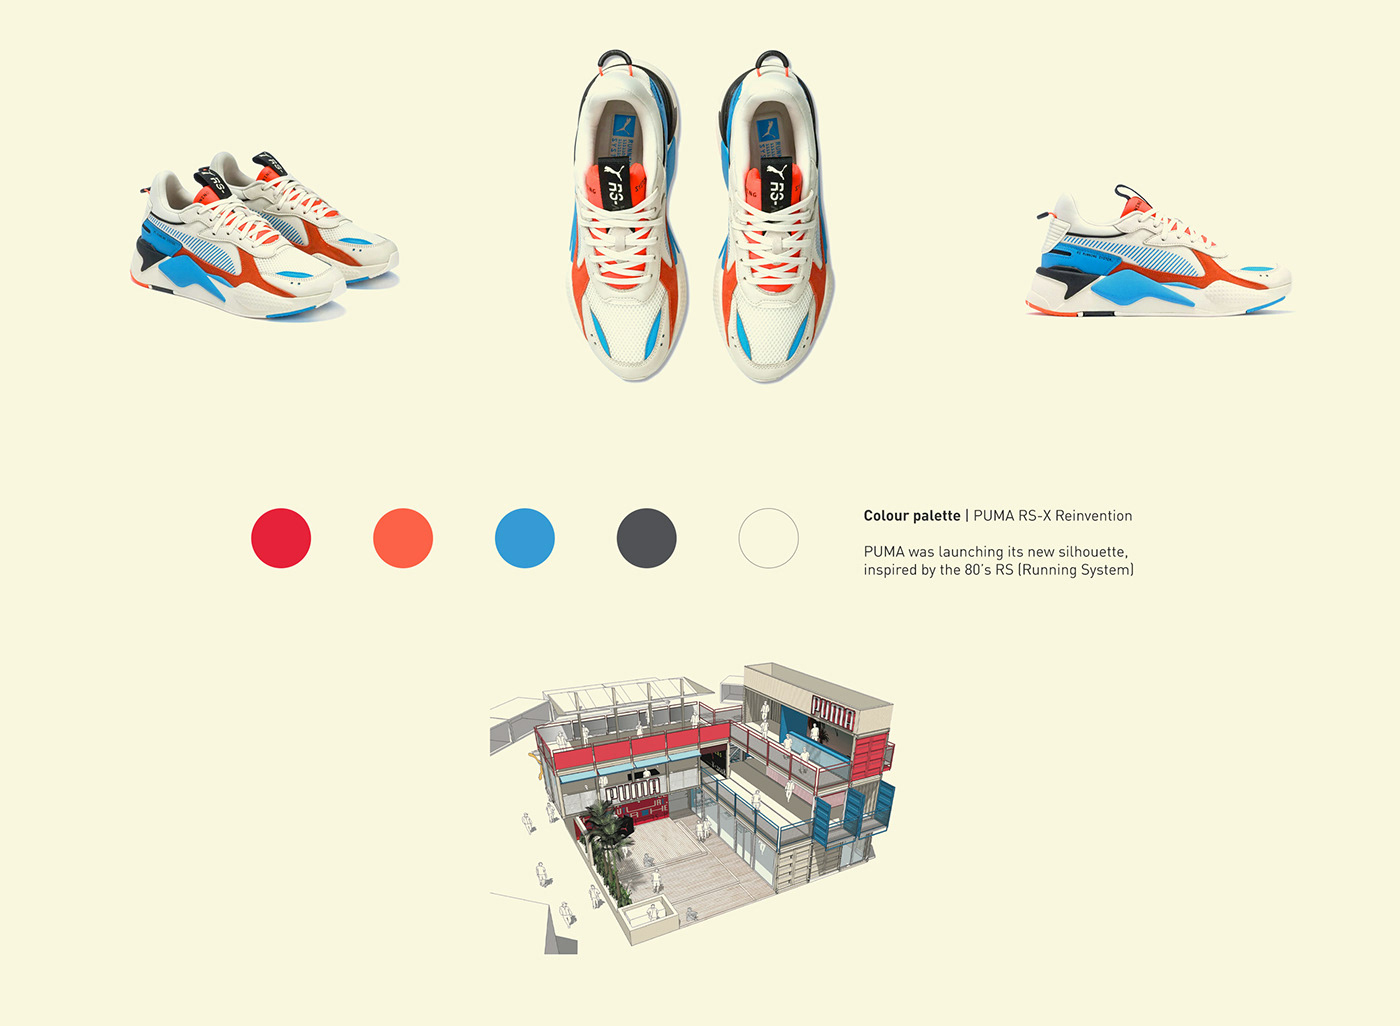 booth dubai hypebeast Murals sneakers soledxb Space design stand design typography